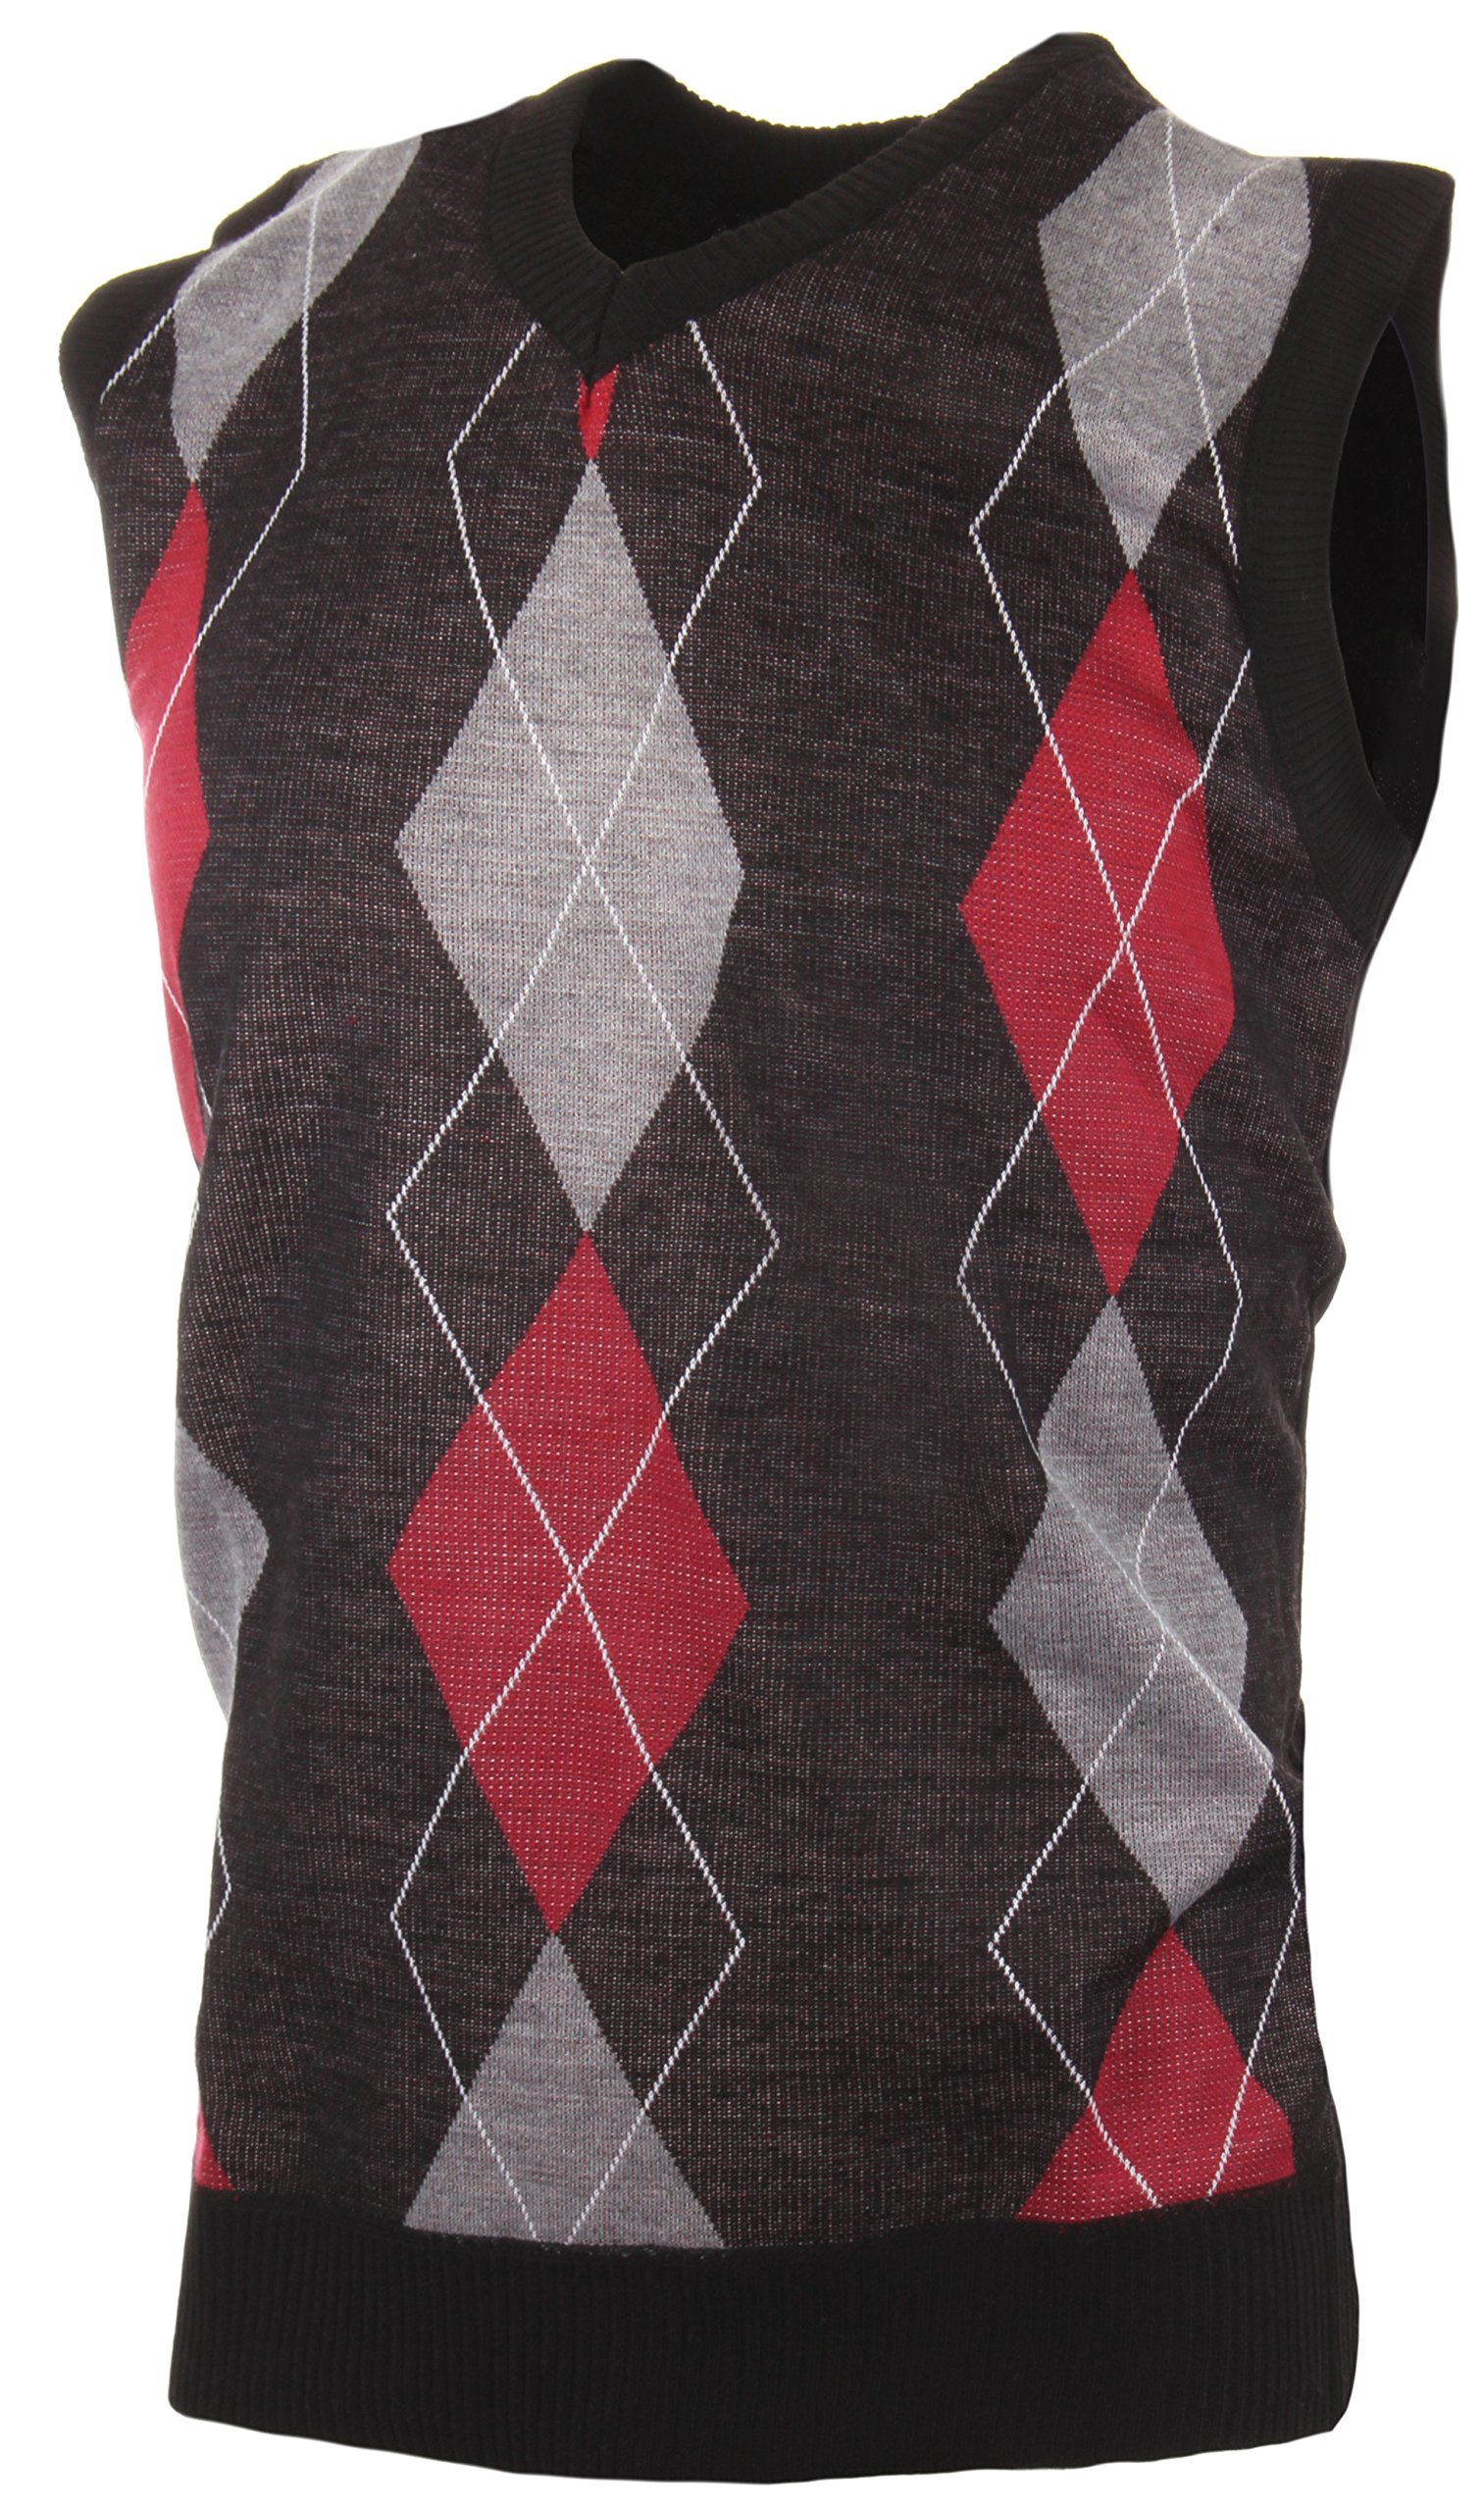 Enimay Men's Business Casual Fashion V Neck Argyle Golf Sweater Vest Argyle Black | Grey | Red Large by Enimay